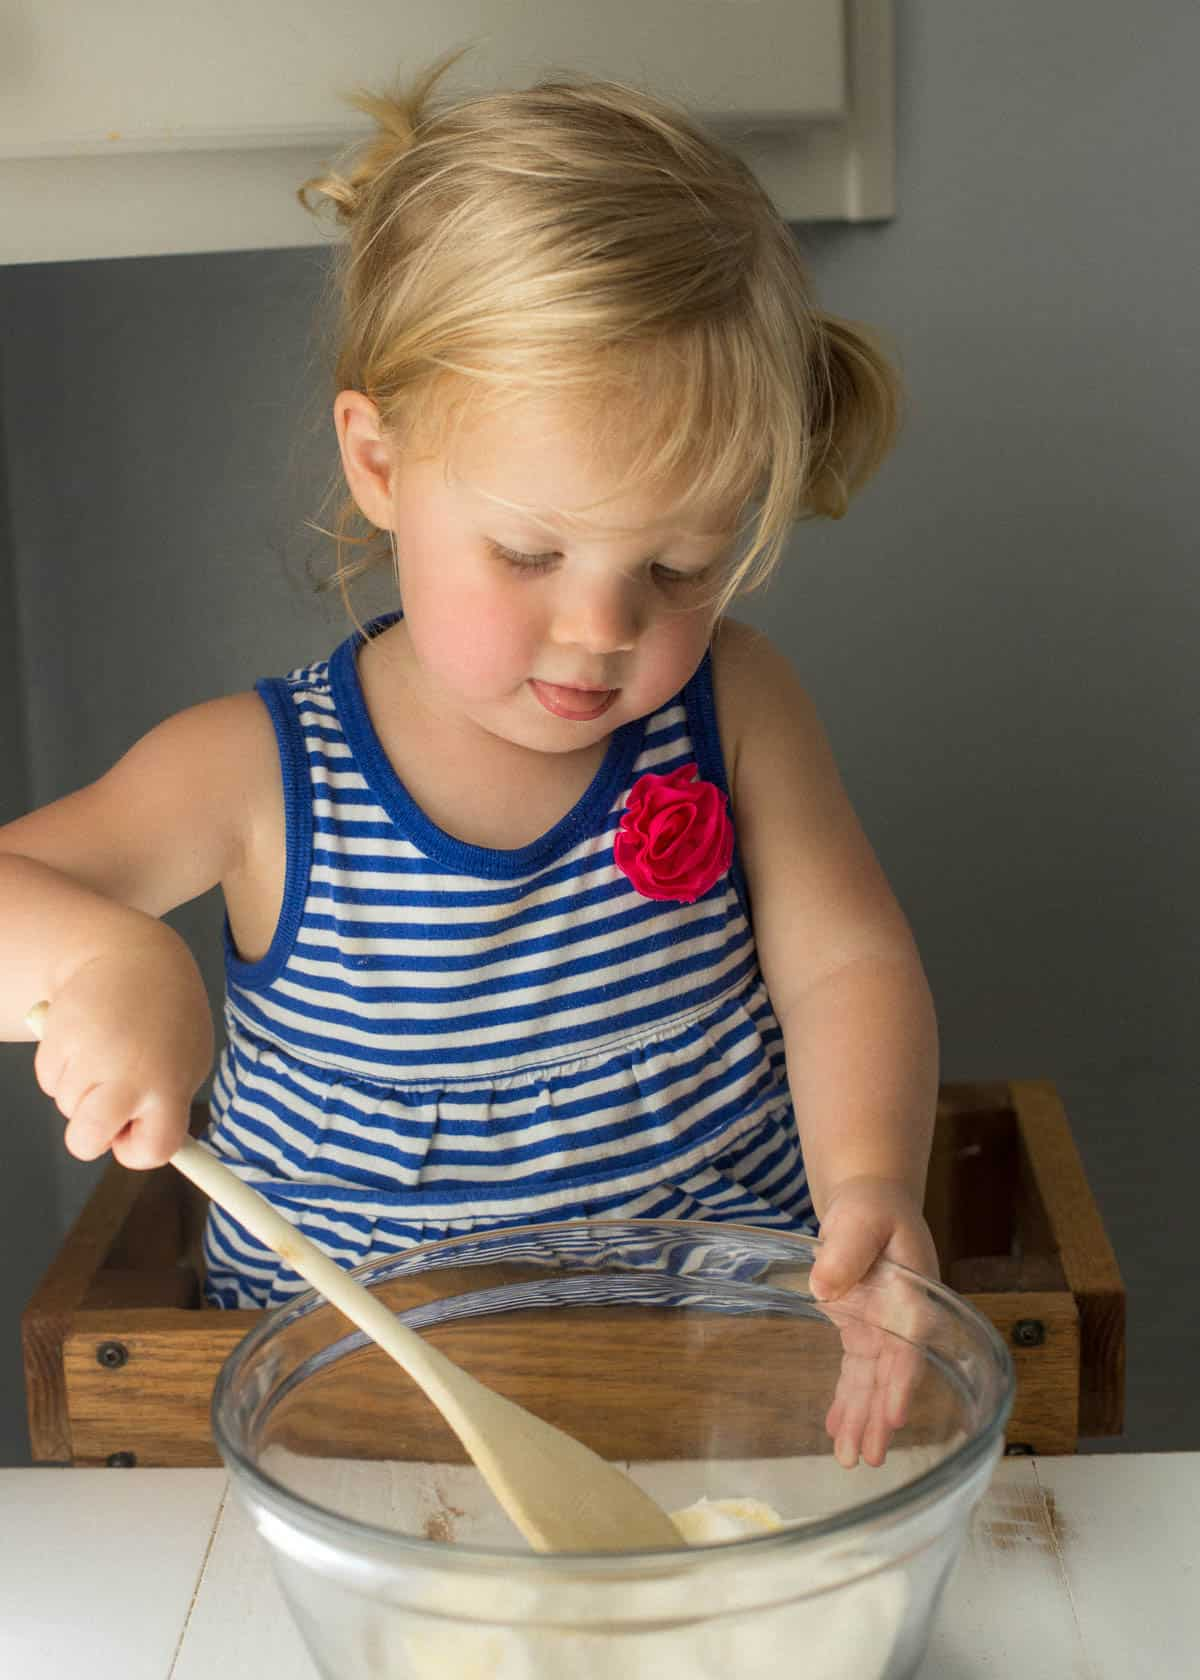 little girl stirring ingredients in a mixing bowl